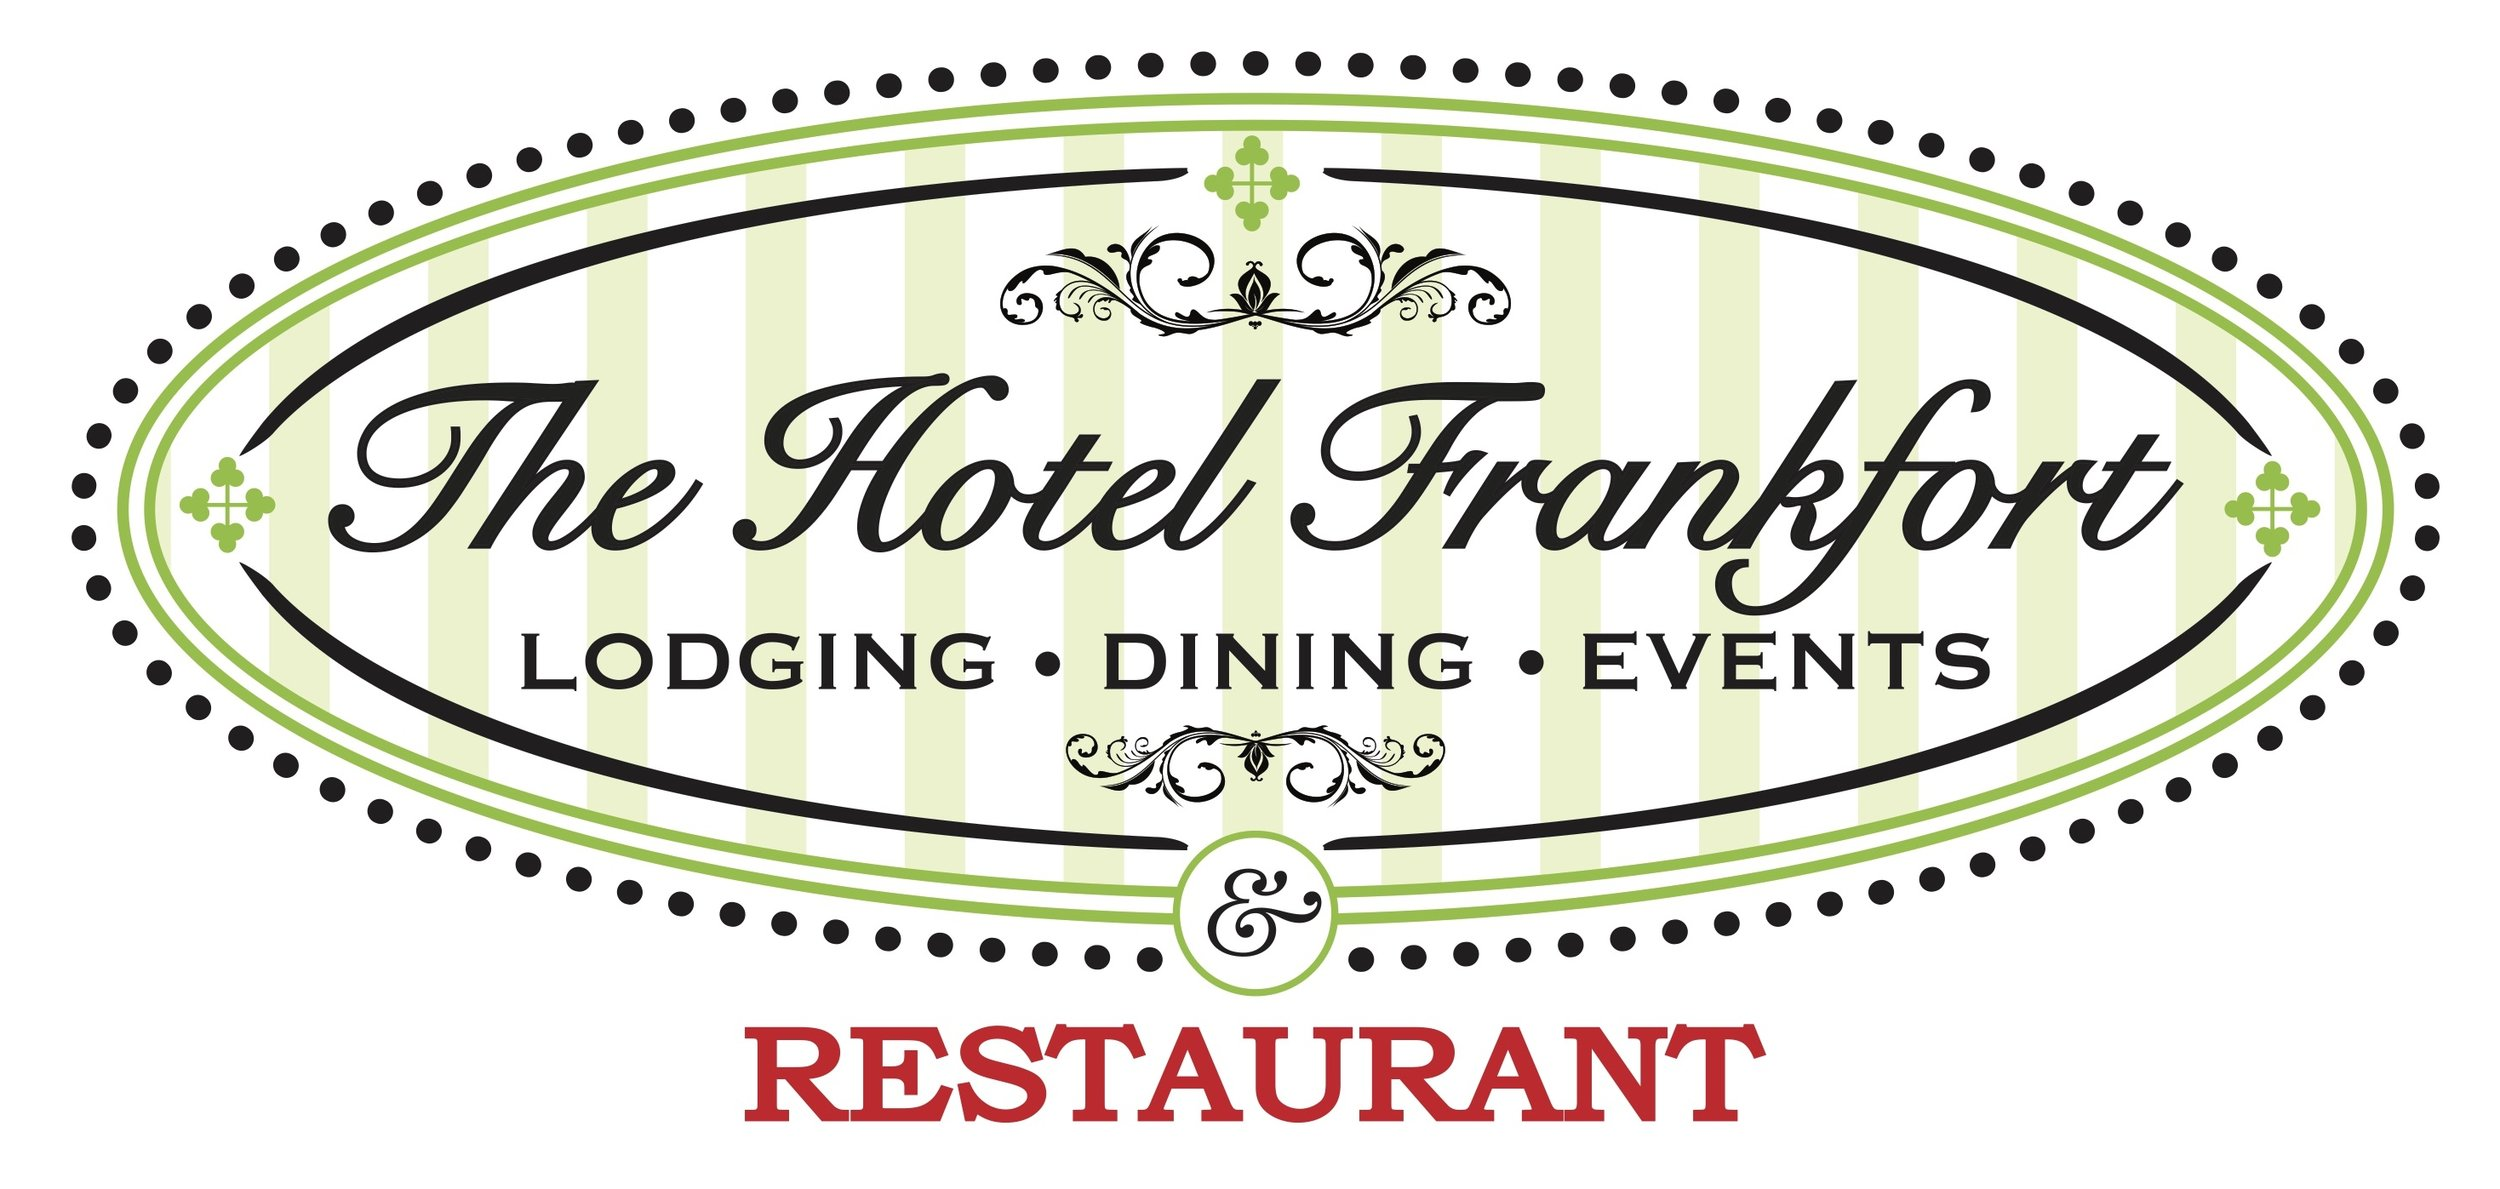 231 Main Street, Frankfort     3-Course Menu for Two - $25    First Course  - Two Small Salads   Second Course  - Choice of Two Entrées: Pot Pie, Meatloaf, Fried Chicken, or Pork Steak   Third Course  - Two House Desserts